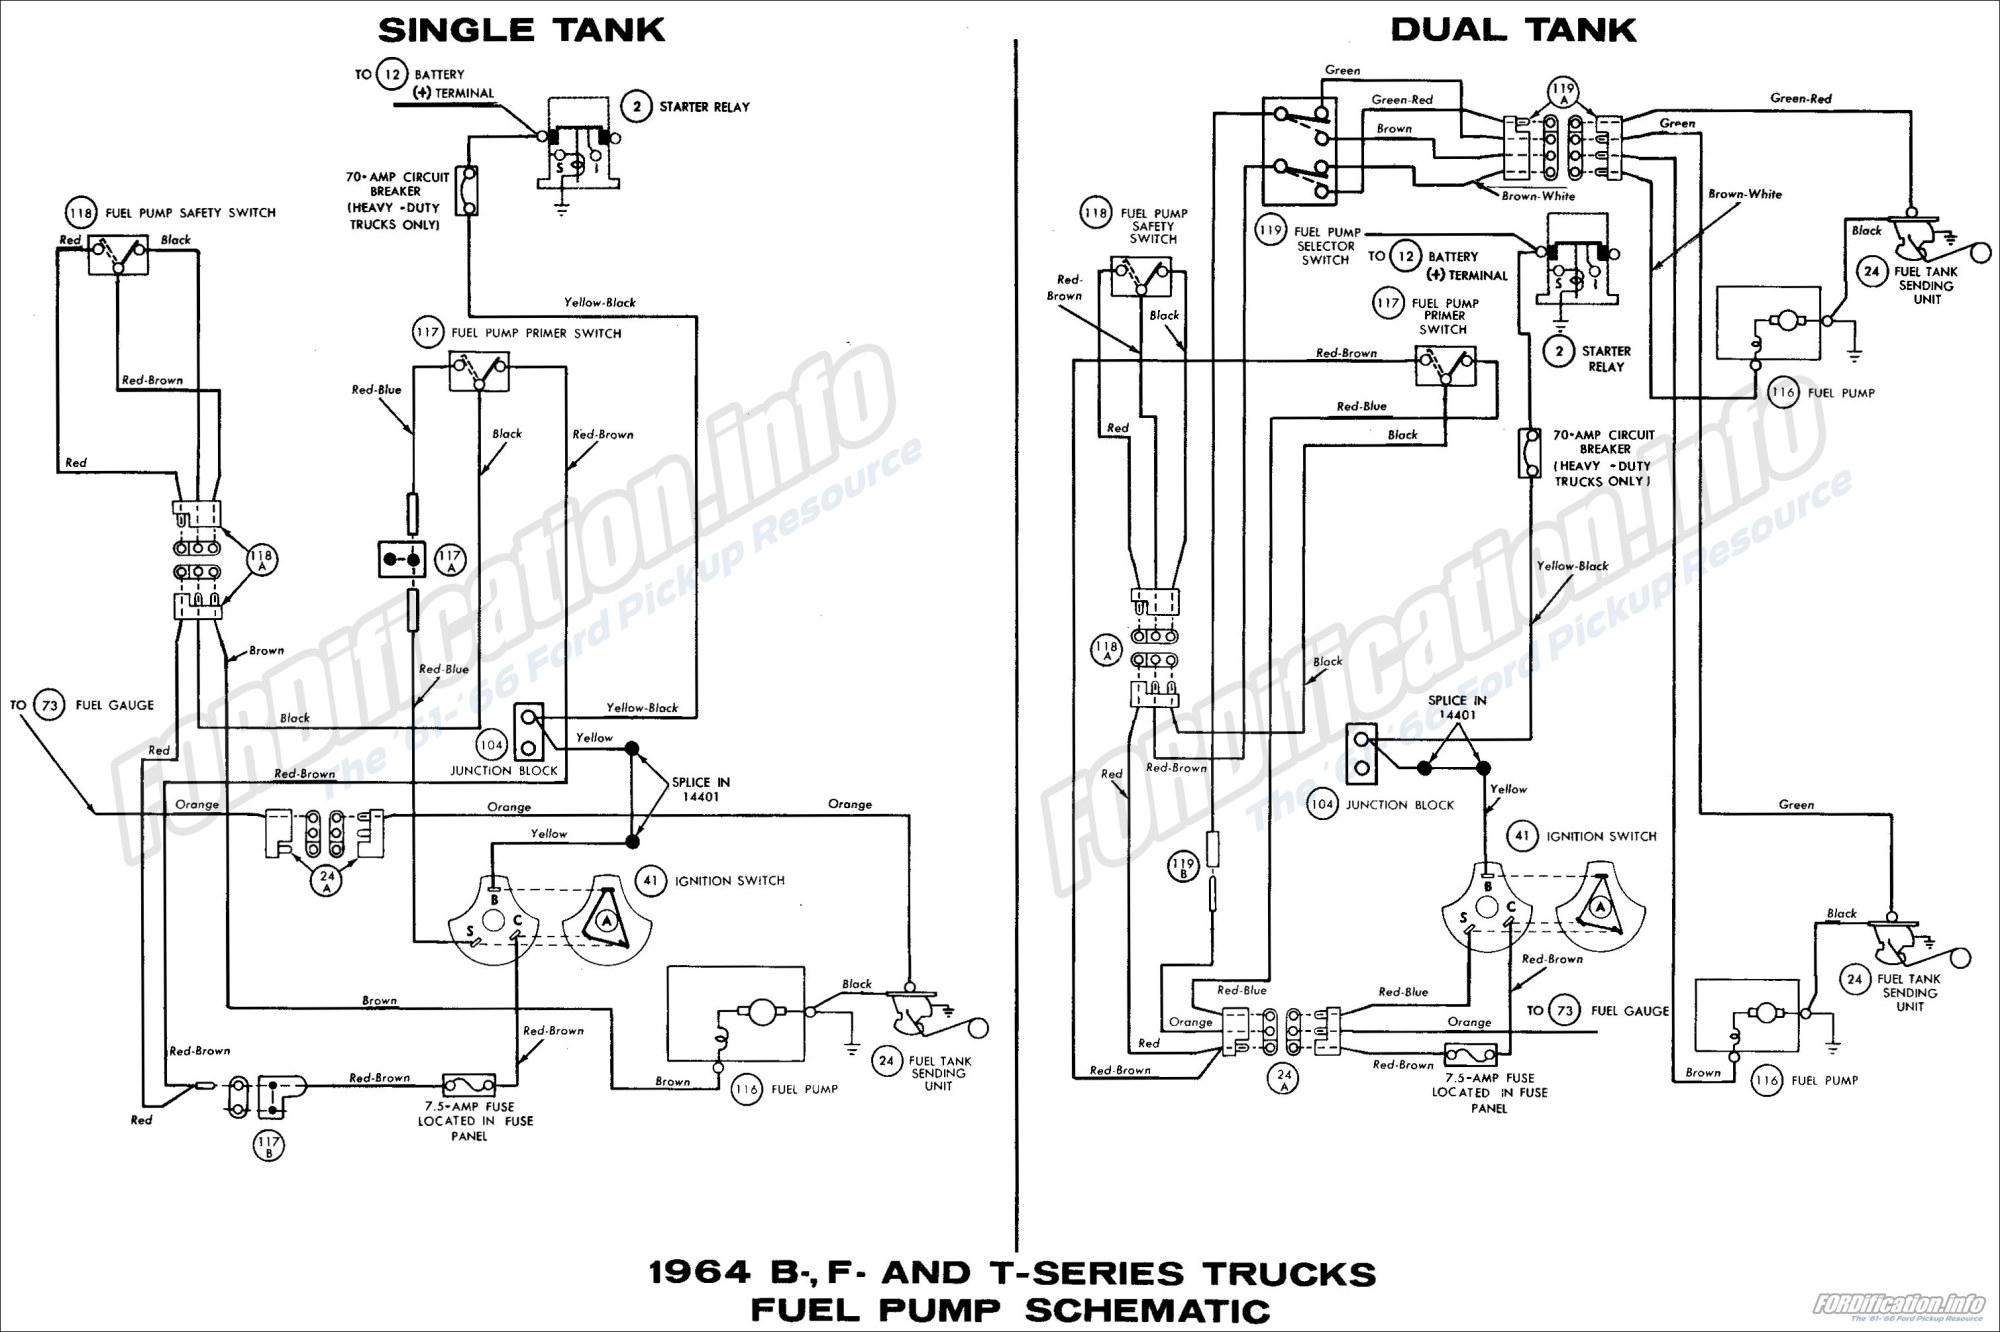 hight resolution of ford b f tseries trucks 1964 fuel pump schematic diagram all 1964 ford truck wiring diagrams fordification